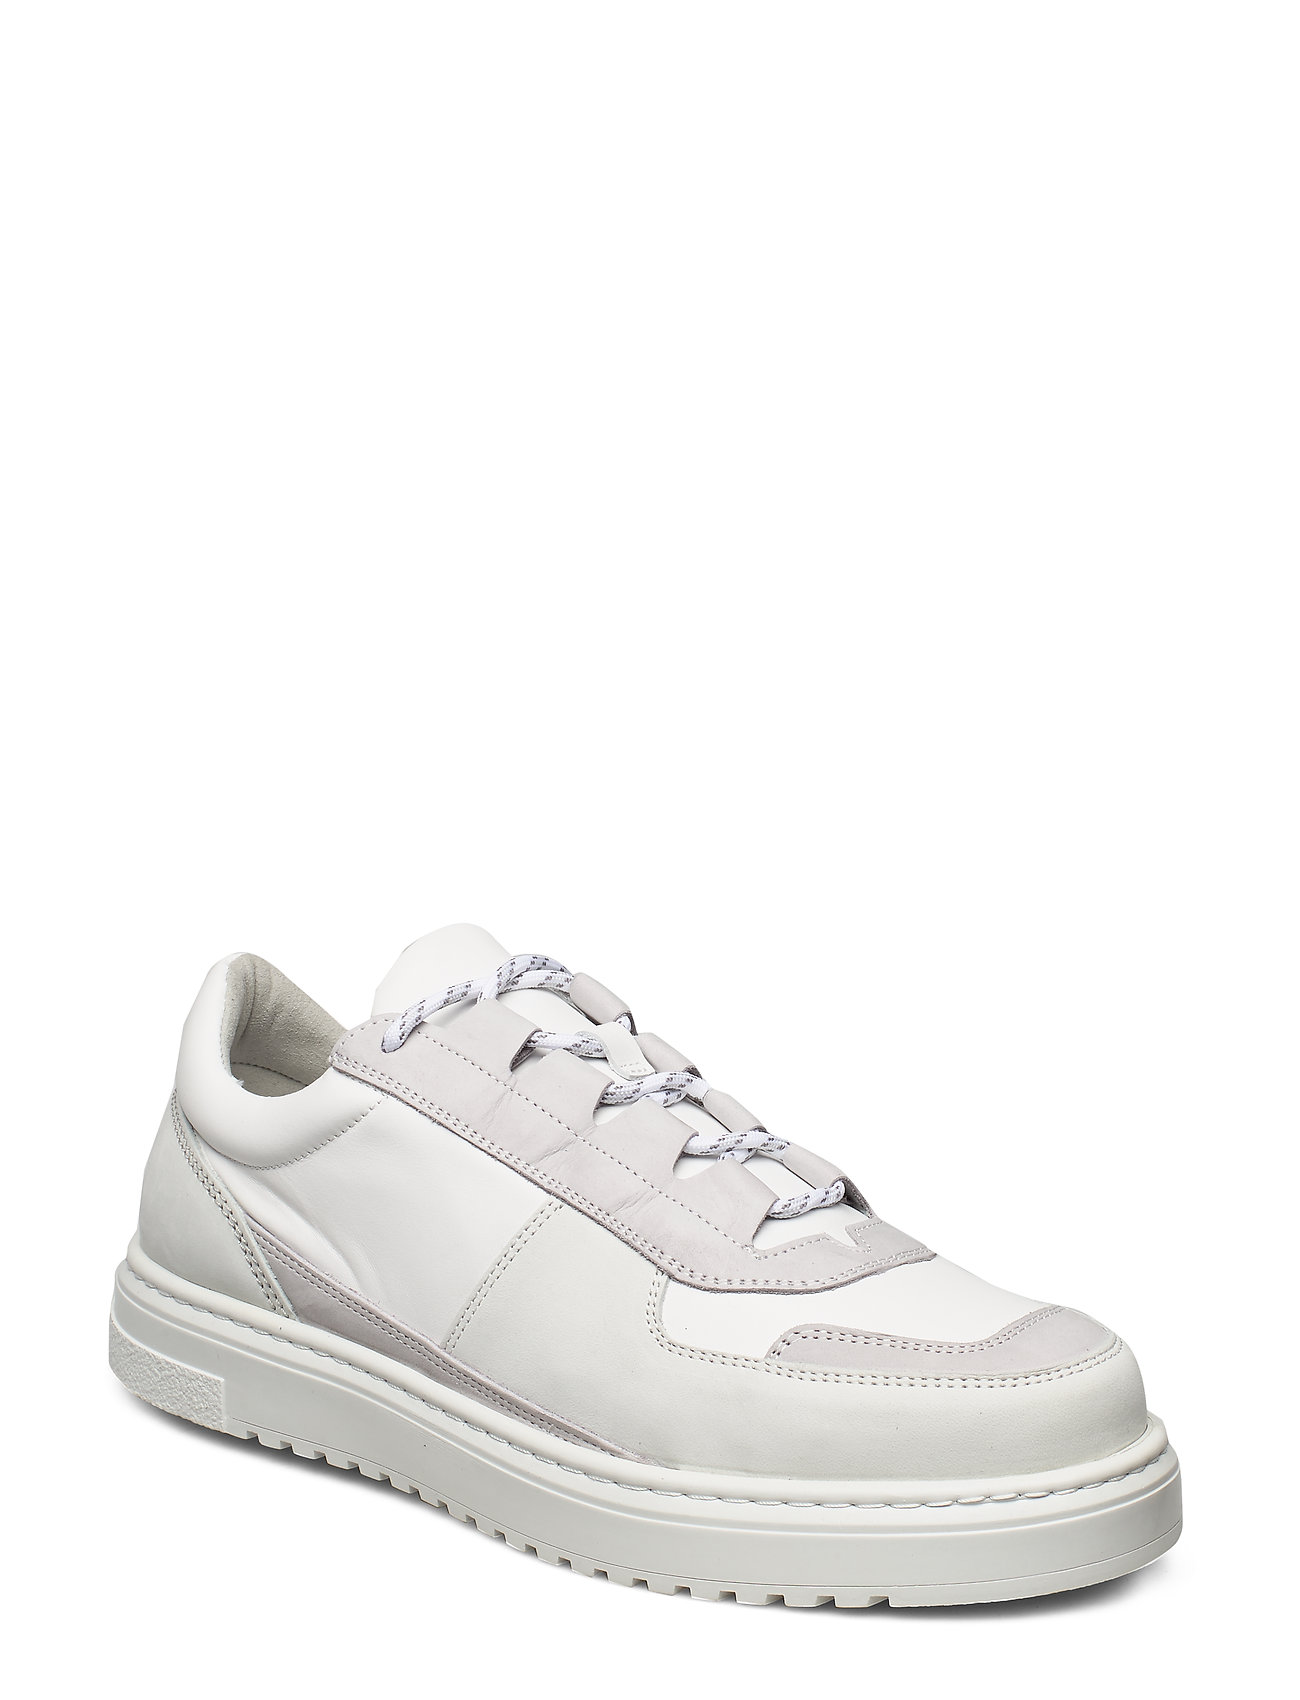 Martin Low top Sneakers